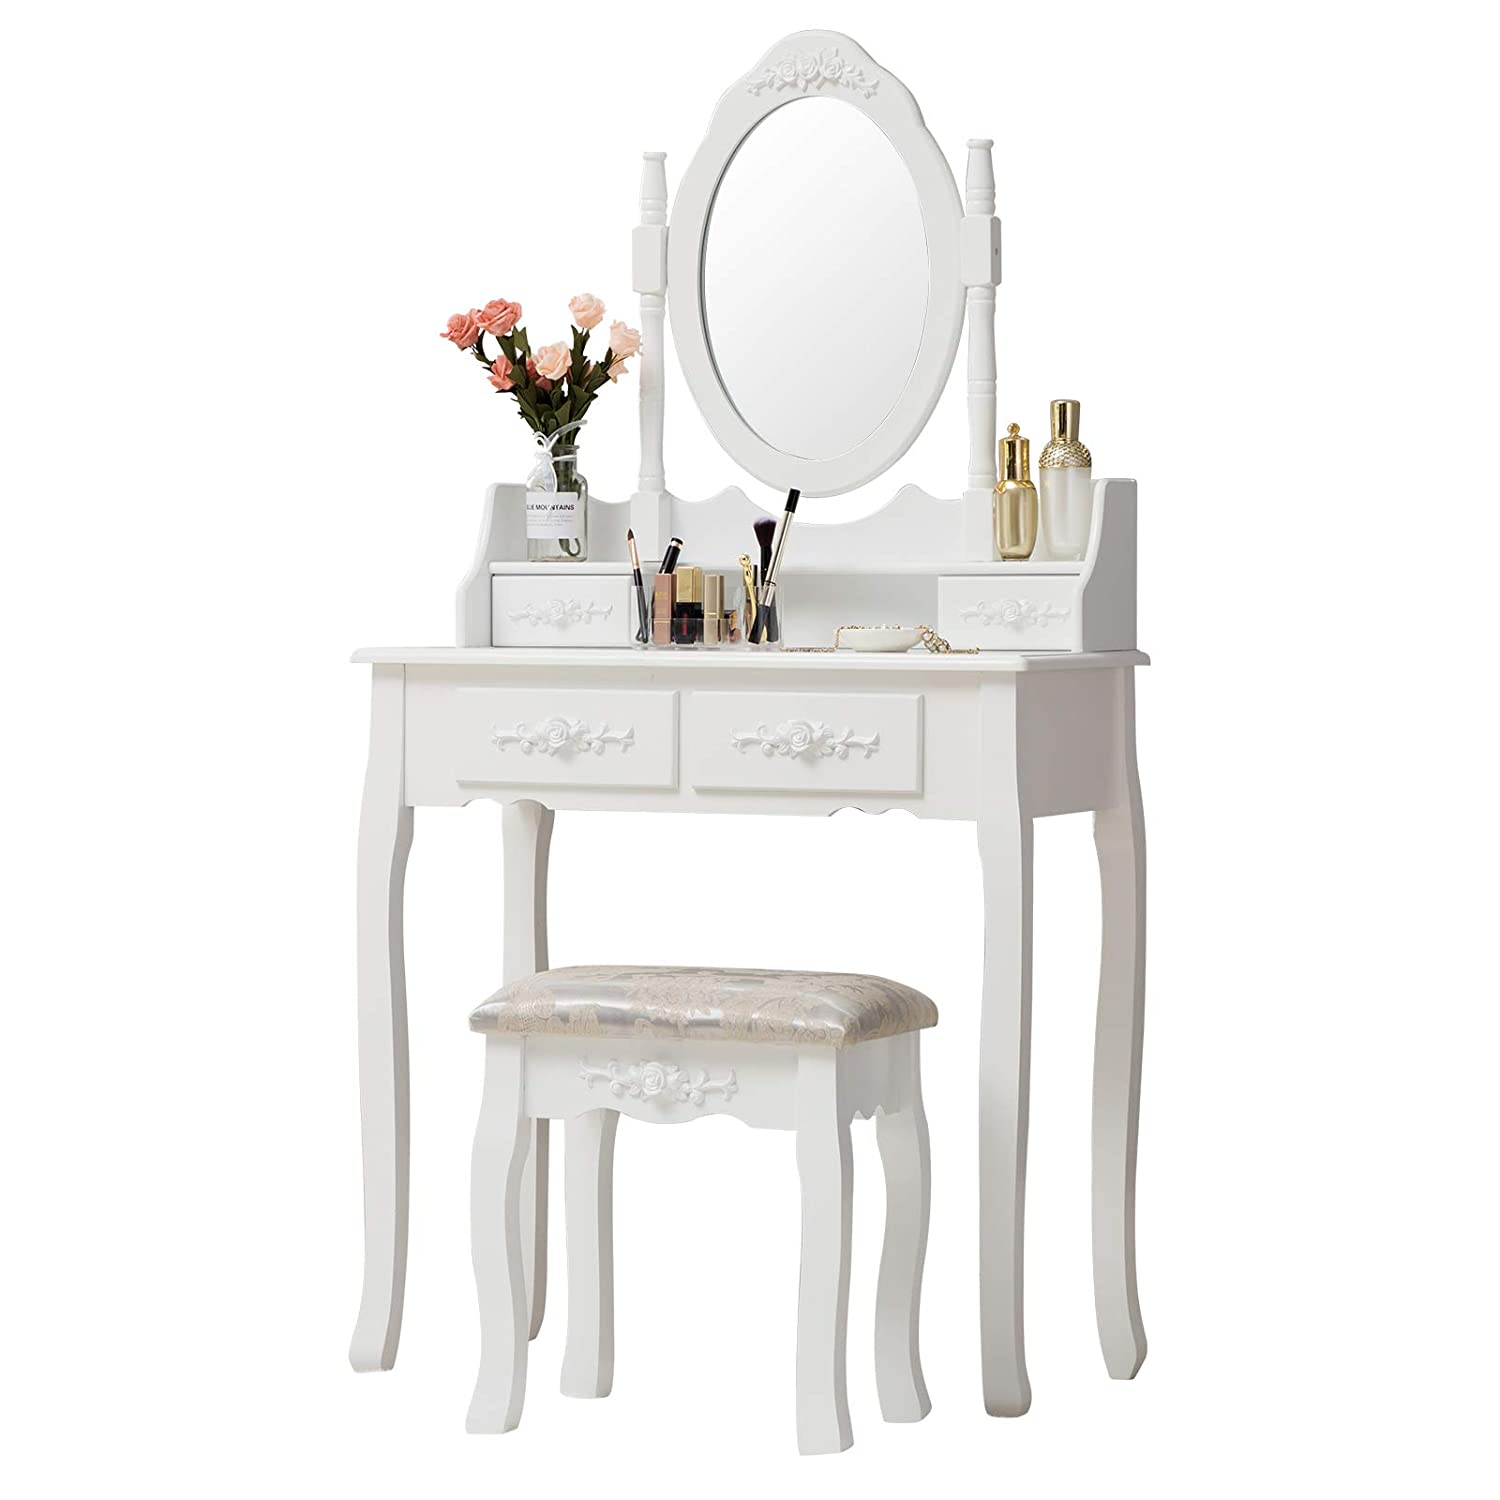 Vanity Table Sets, Unihome Makeup Table with Oval Mirror Dressing Table Cushioned Stool 5 Drawers Wooden Makeup Desk Vanity White Small Vanity Makeup Table Set for Women